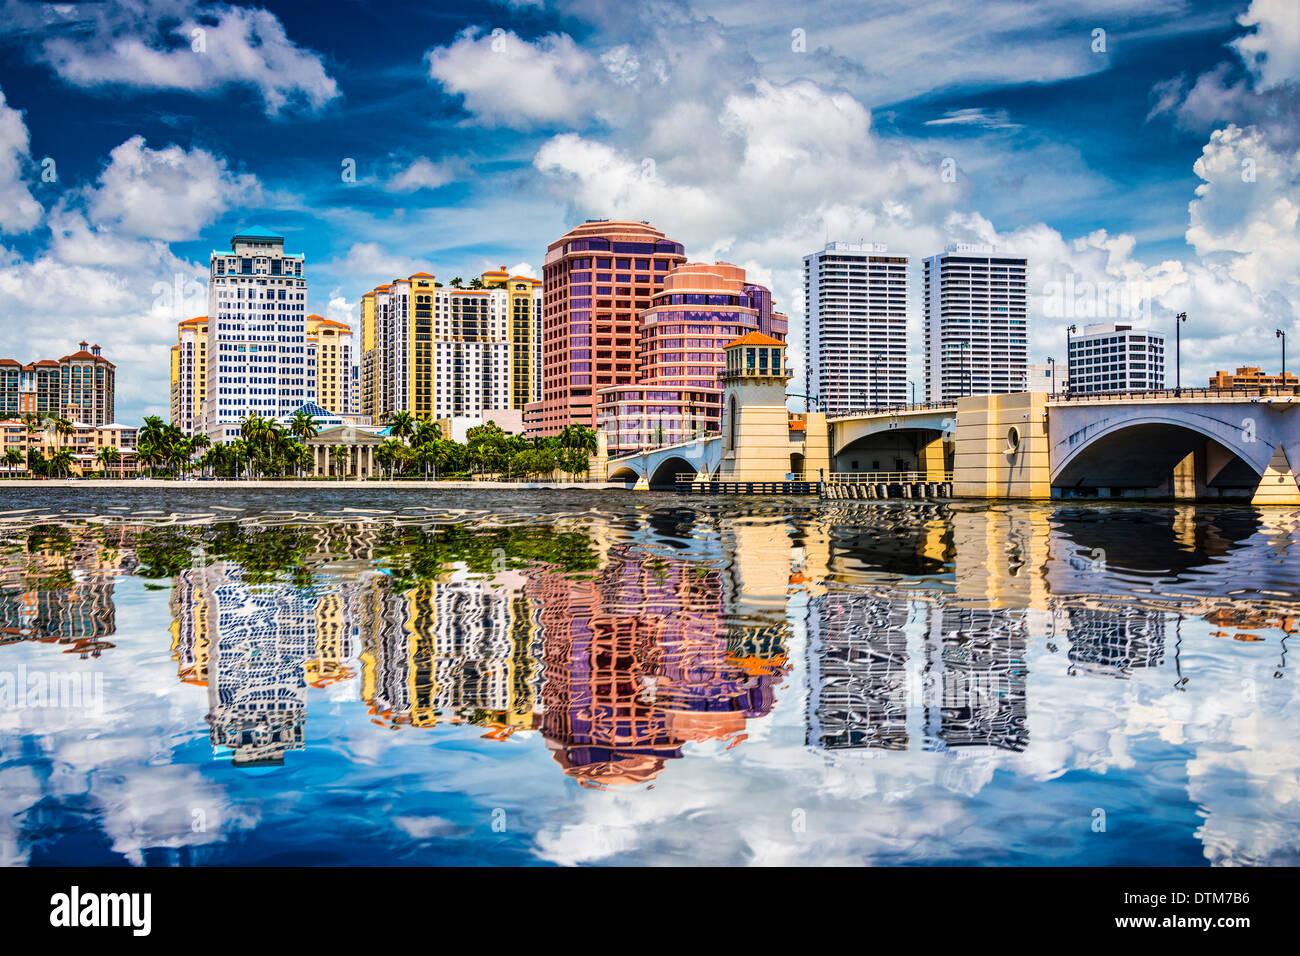 West Palm Beach, Floride, USA Centre-ville sur l'Intracoastal Waterway. Photo Stock